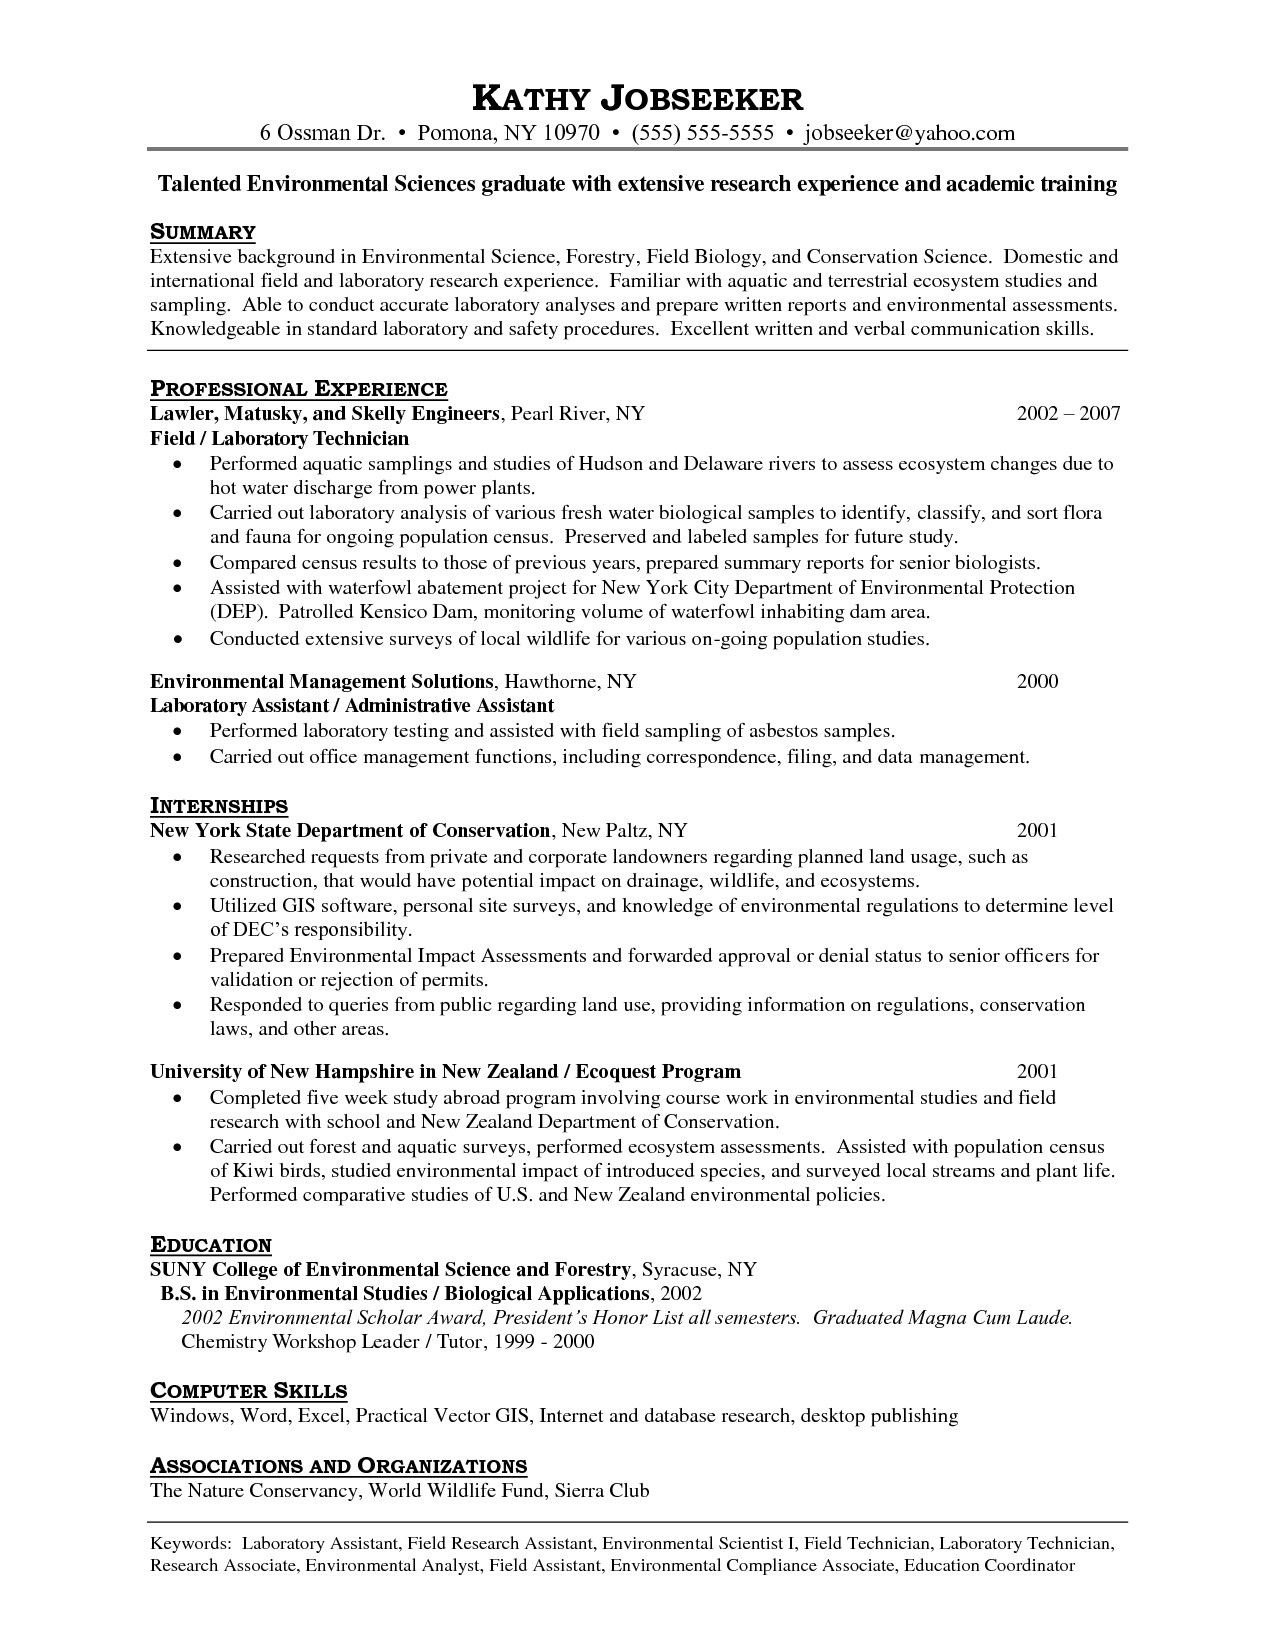 80 Luxury Stock Of Resume Objective Examples For Pharmacist Check More At Https Www Ourpetscrawley Com 80 Luxury Stock Of Resume Objective Examples For P Radio